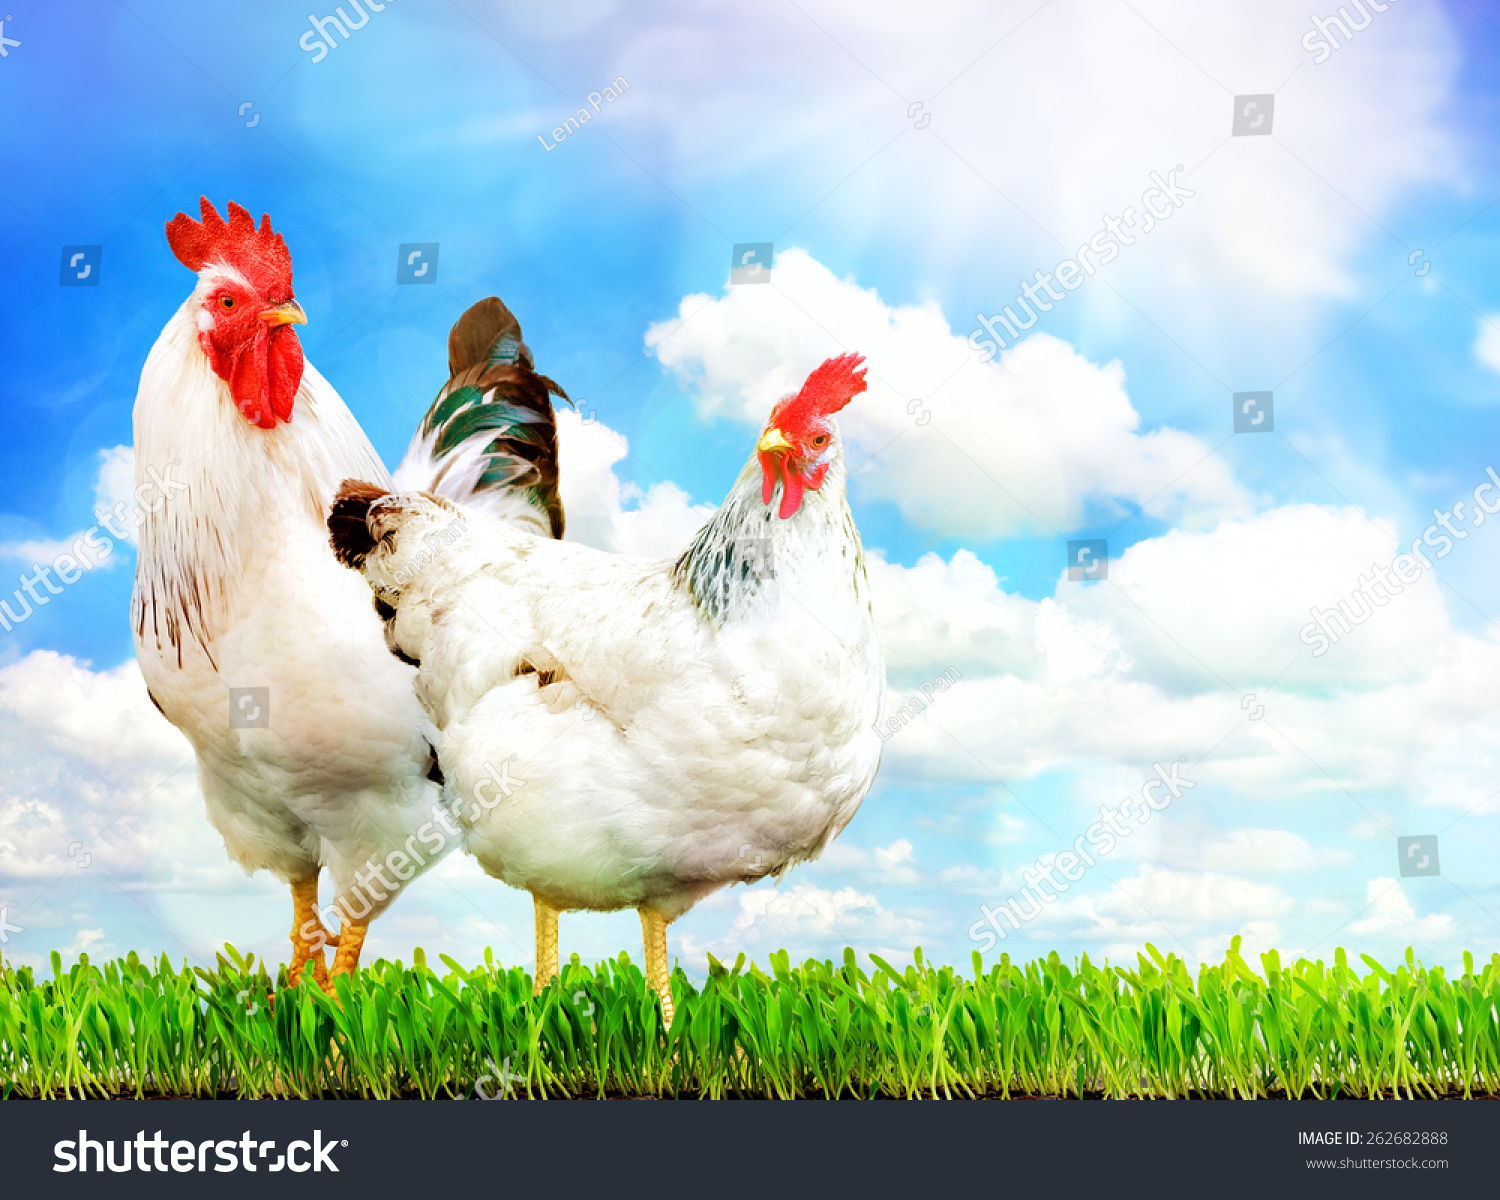 White chicken and white rooster standing on a green grass against sky